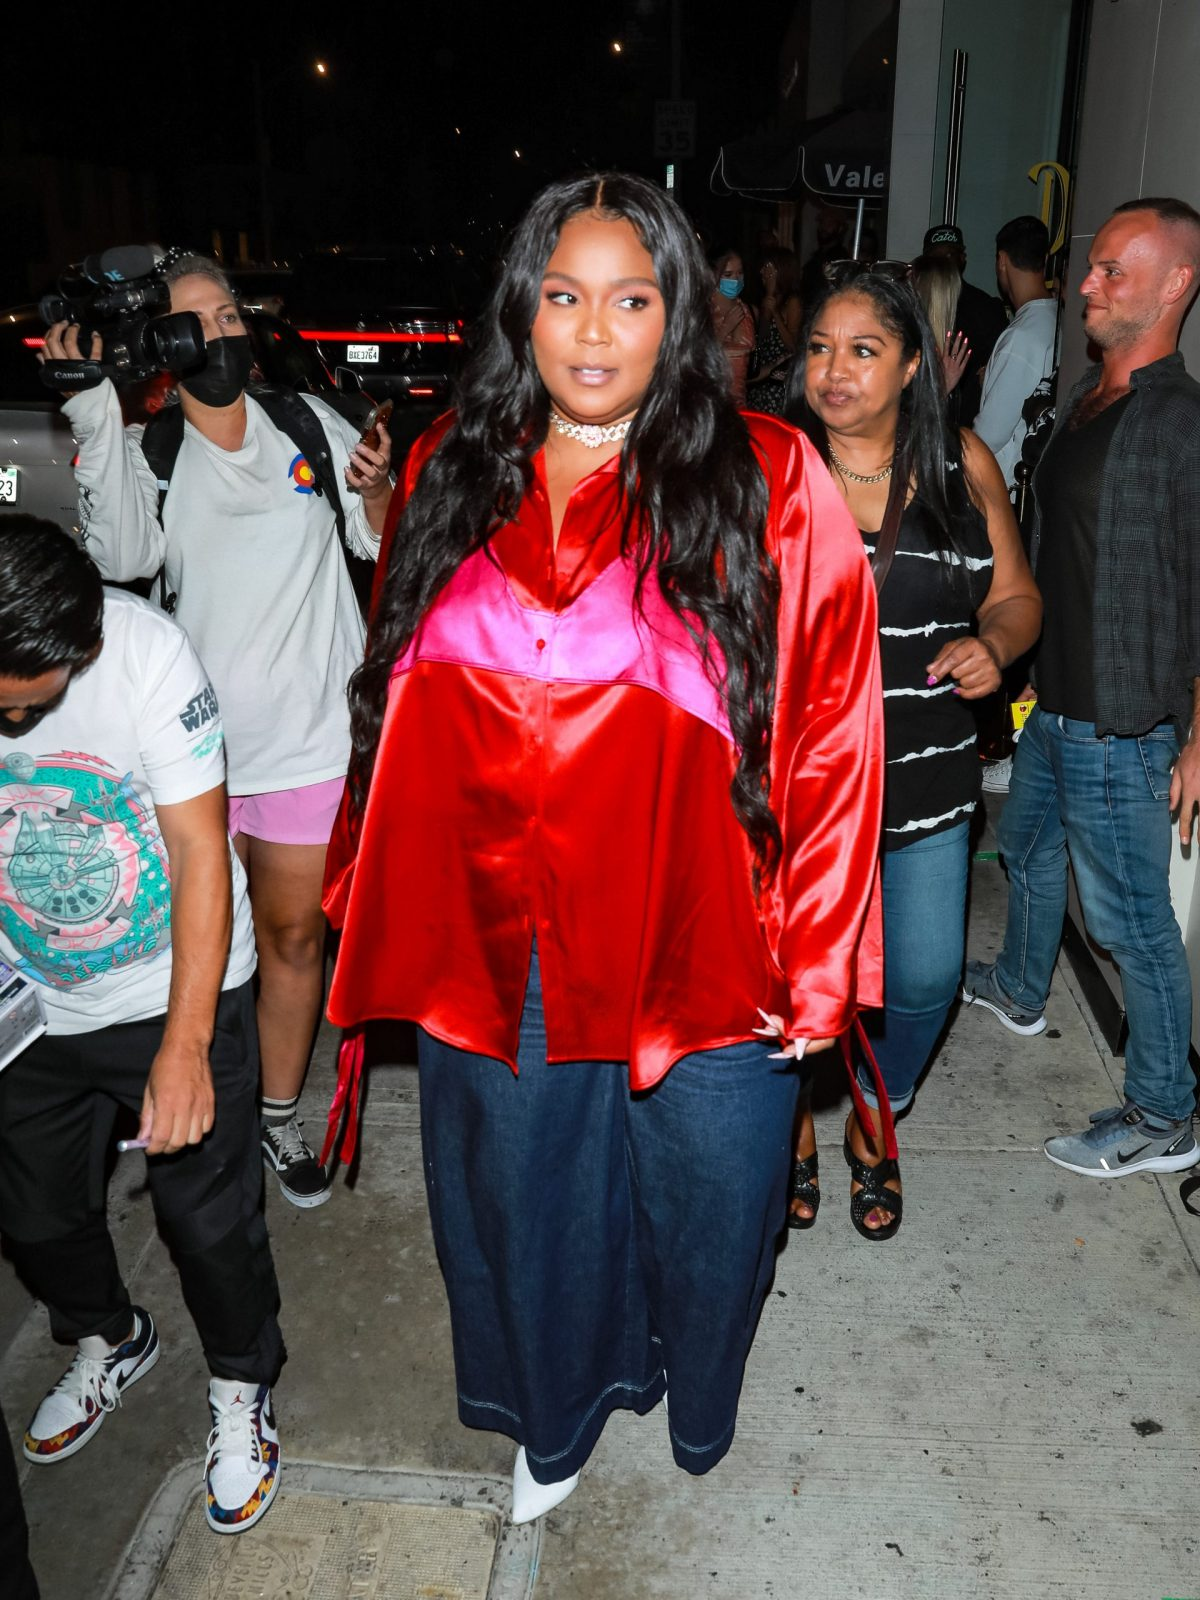 Lizzo in red shirt